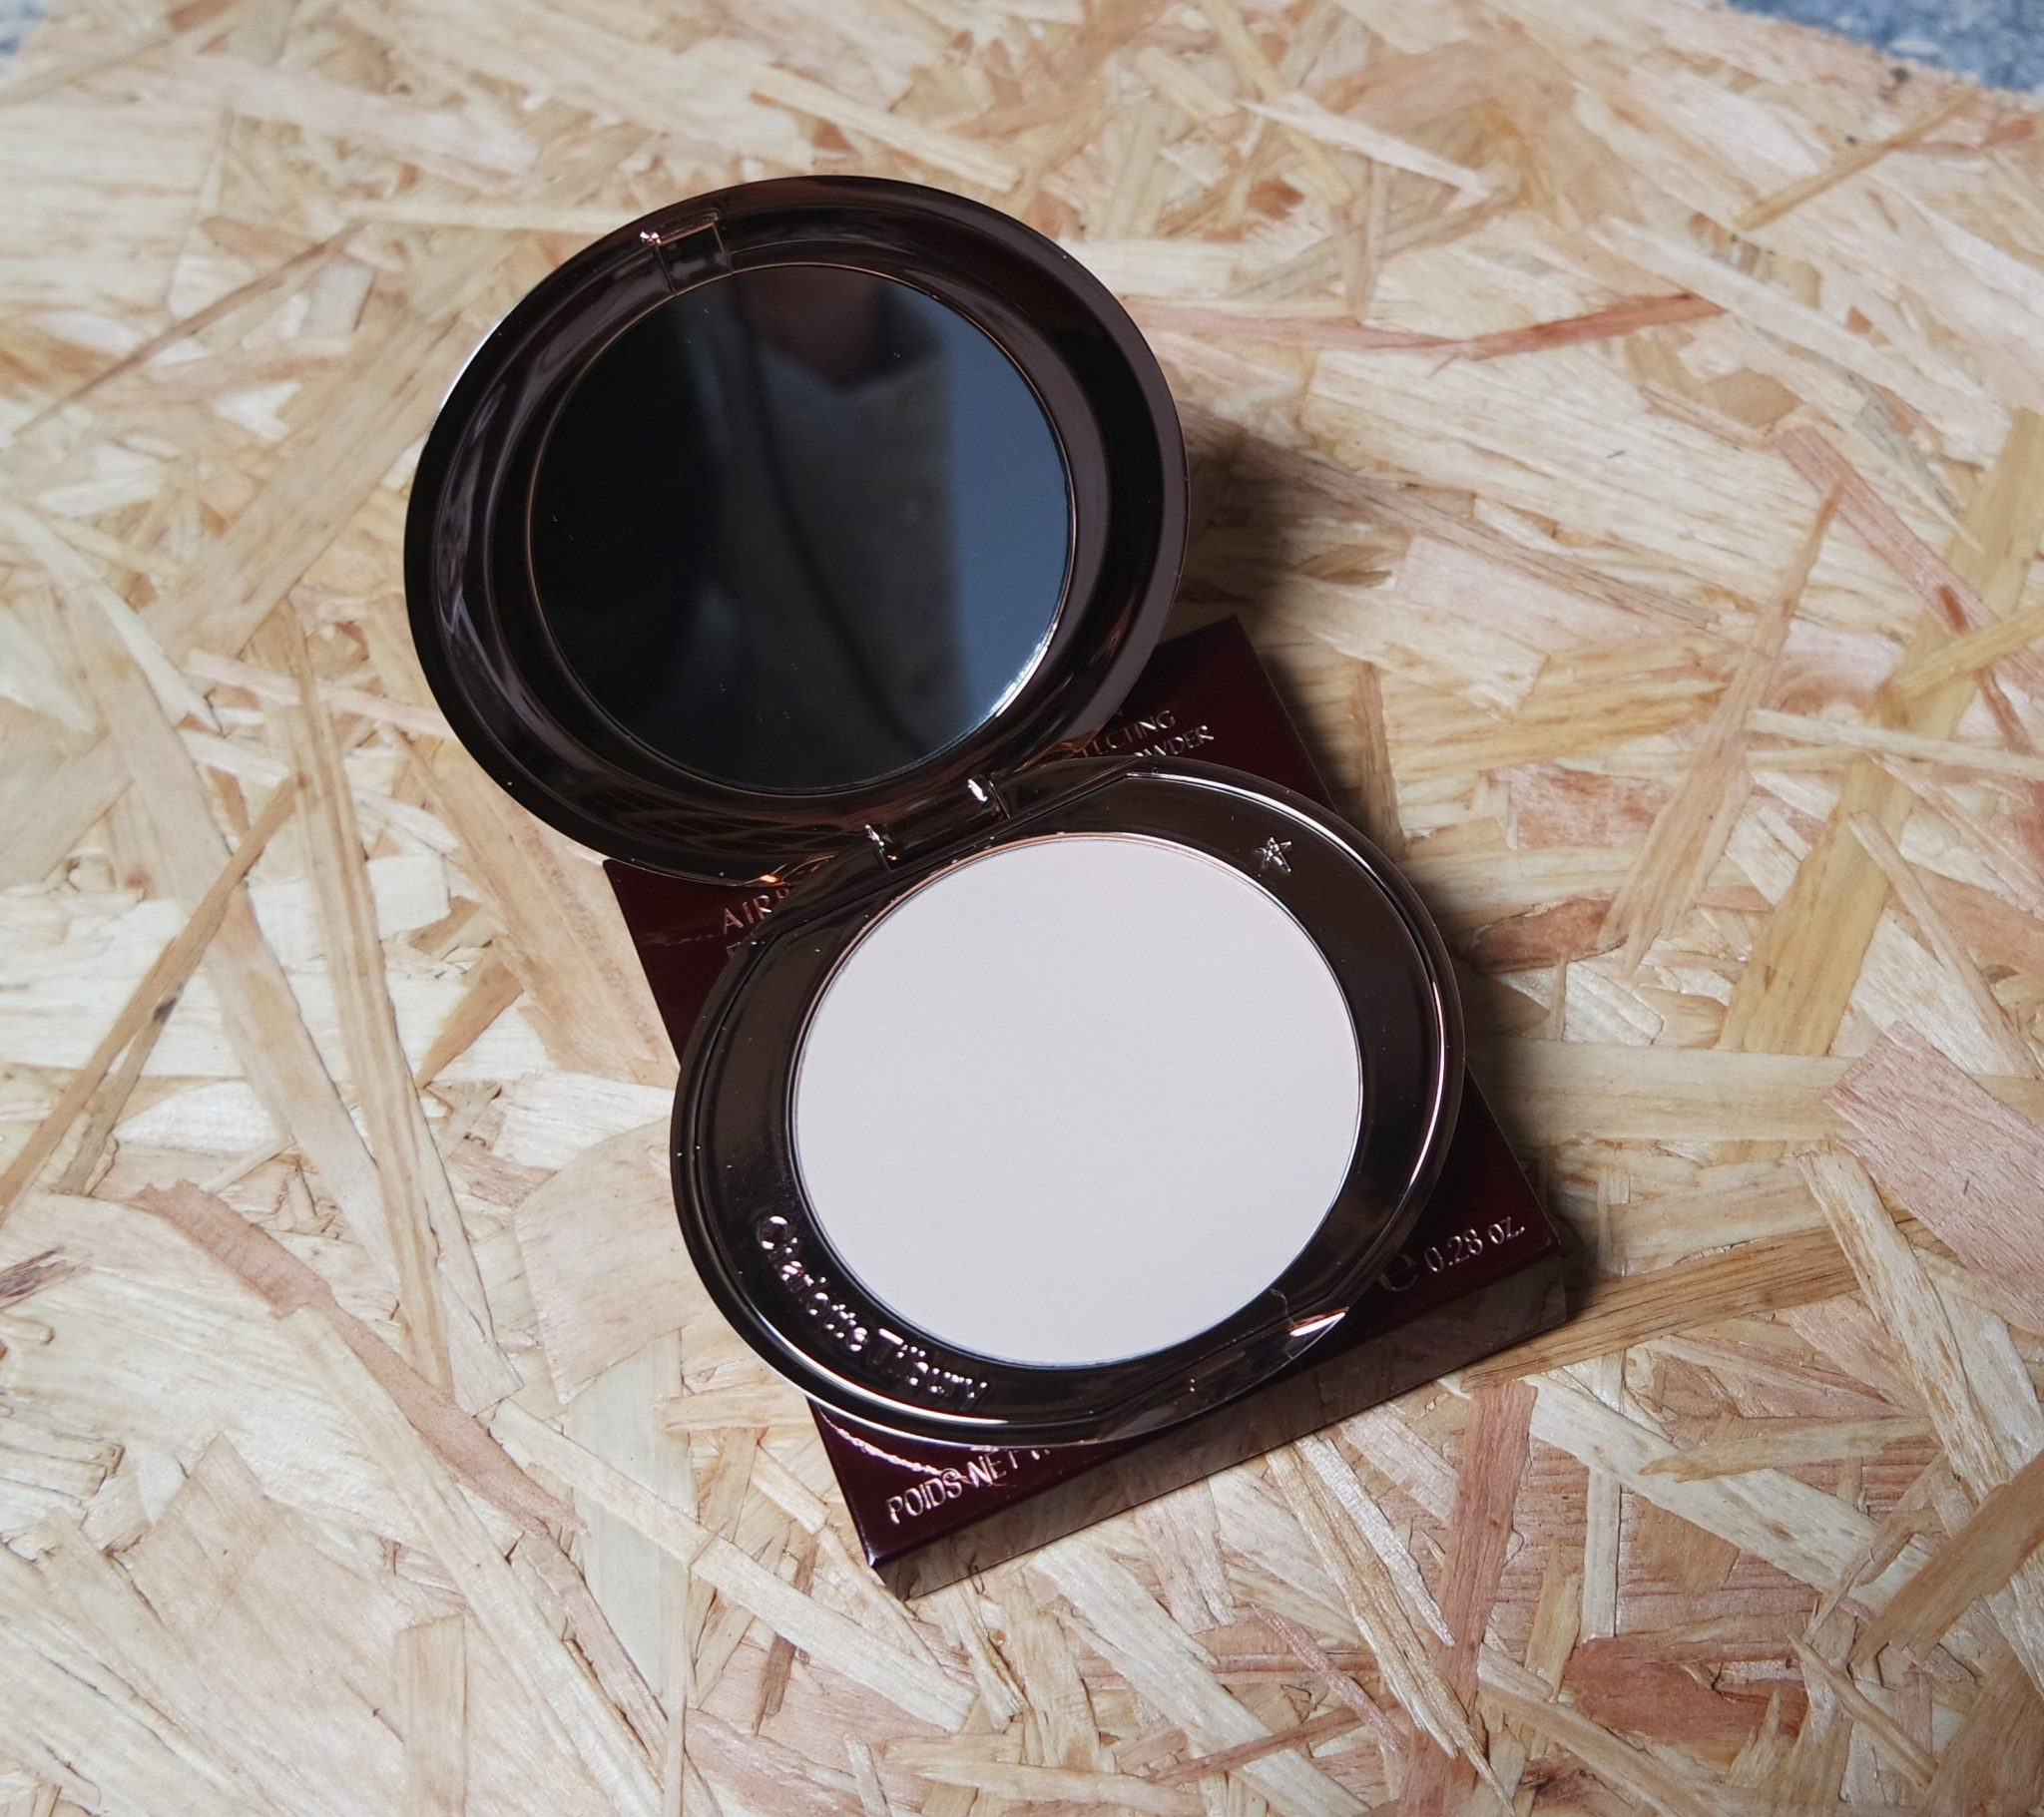 charlotte tilbury airbursh flawless finish